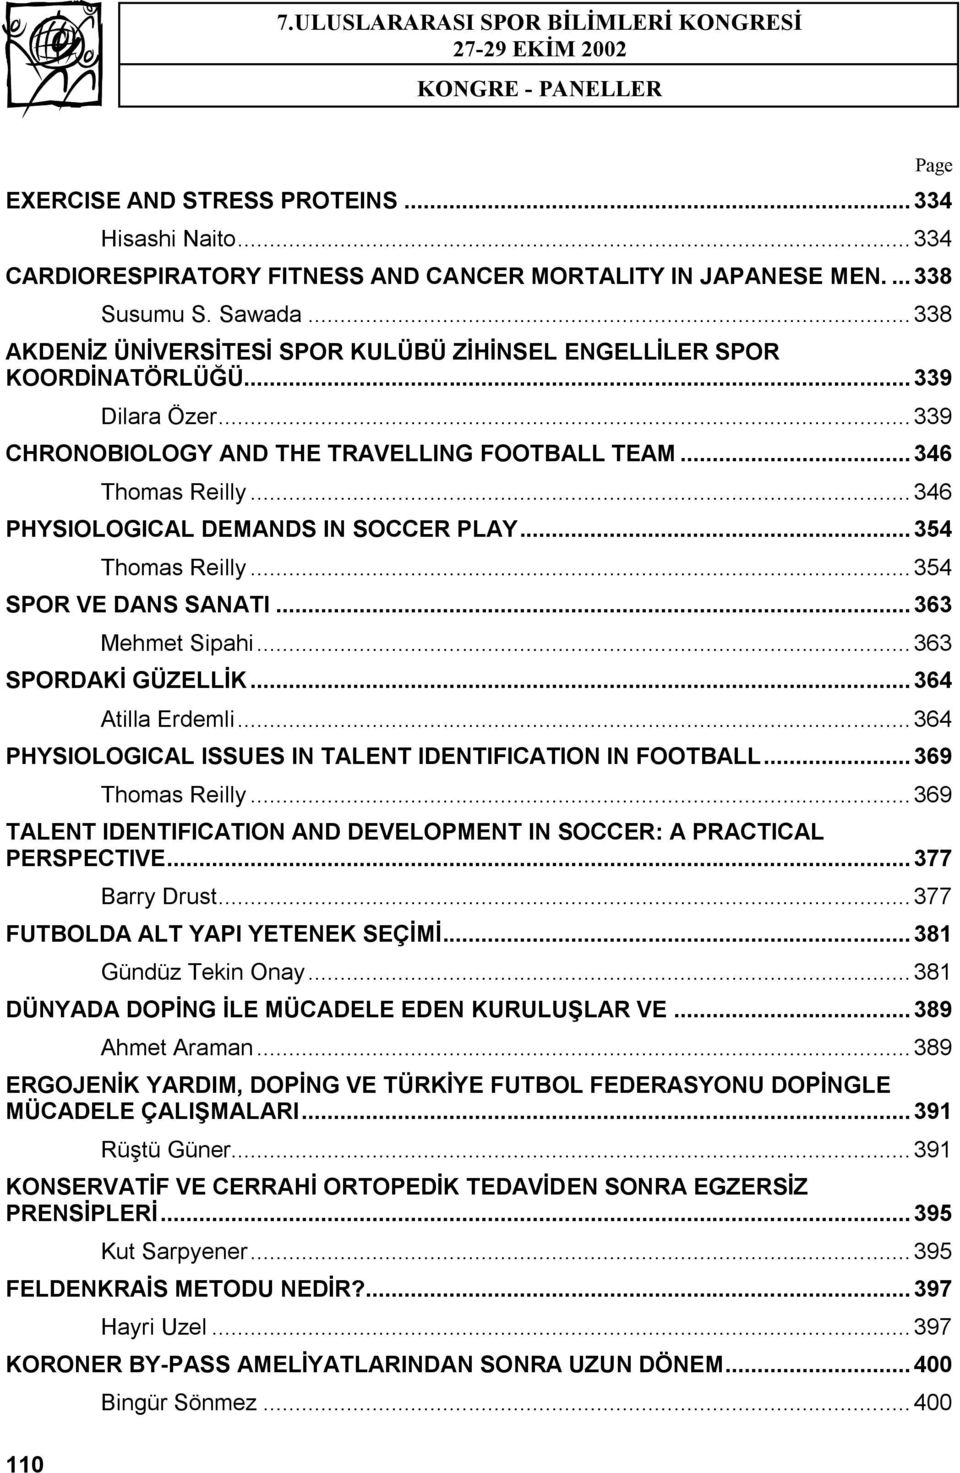 .. 346 PHYSIOLOGICAL DEMANDS IN SOCCER PLAY... 354 Thomas Reilly... 354 SPOR VE DANS SANATI... 363 Mehmet Sipahi... 363 SPORDAKİ GÜZELLİK... 364 Atilla Erdemli.